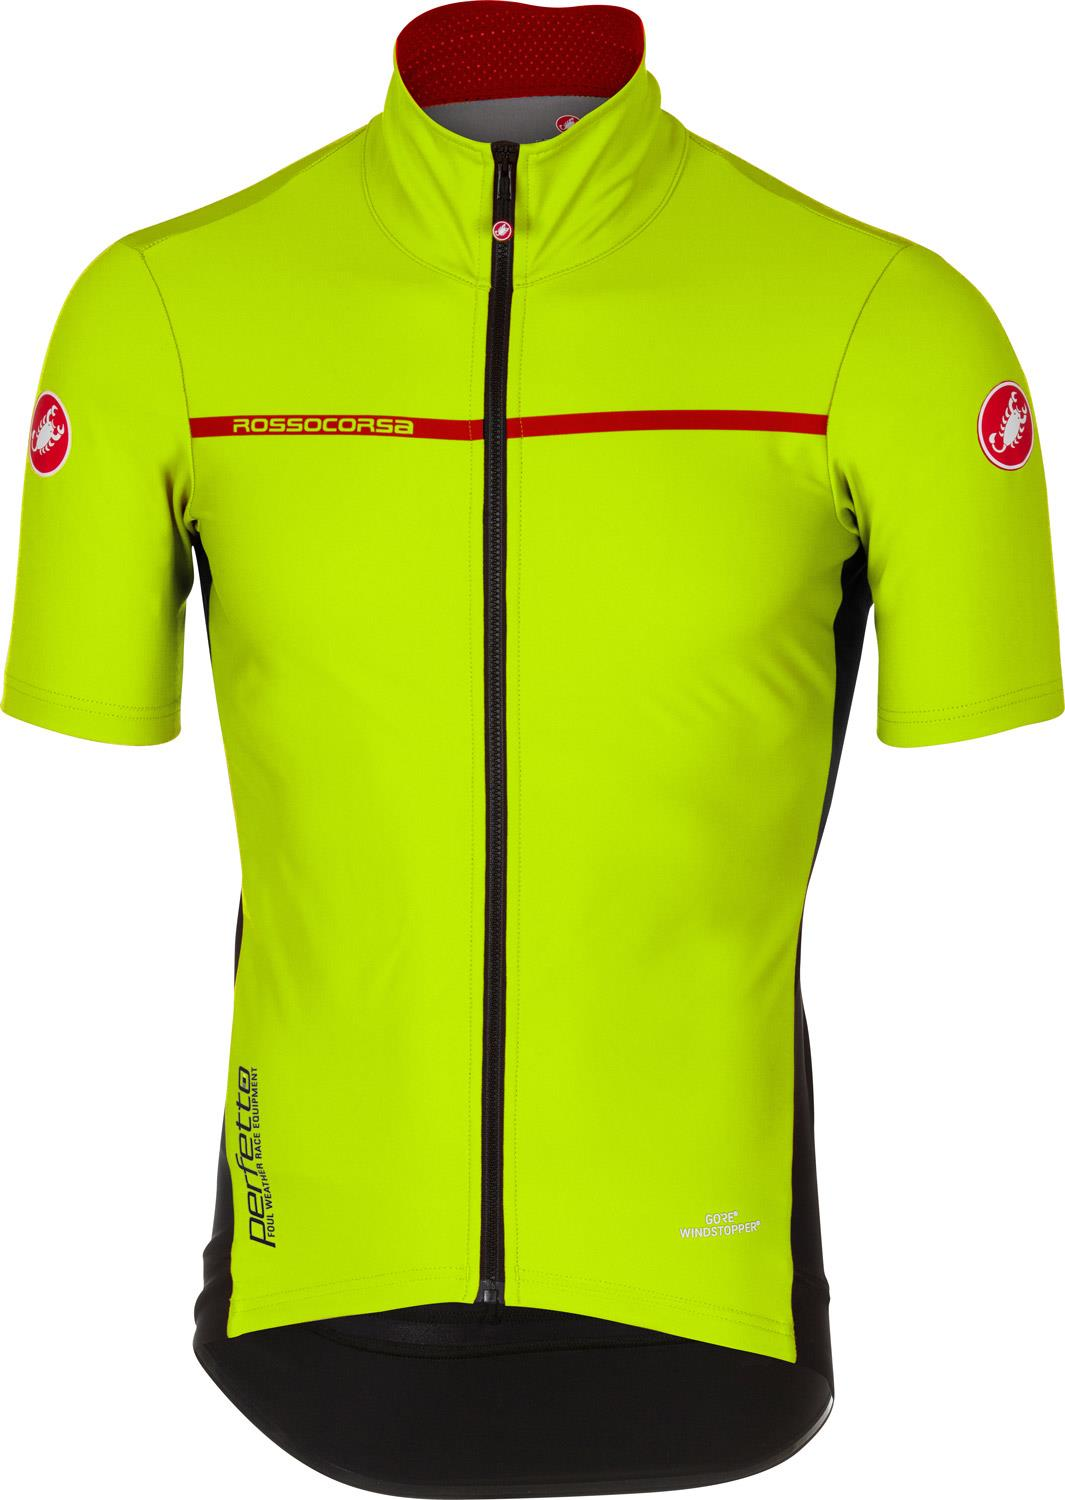 194939ed8 Castelli Perfetto Light 2 Short Sleeve Cycling Jersey - AW18 ...